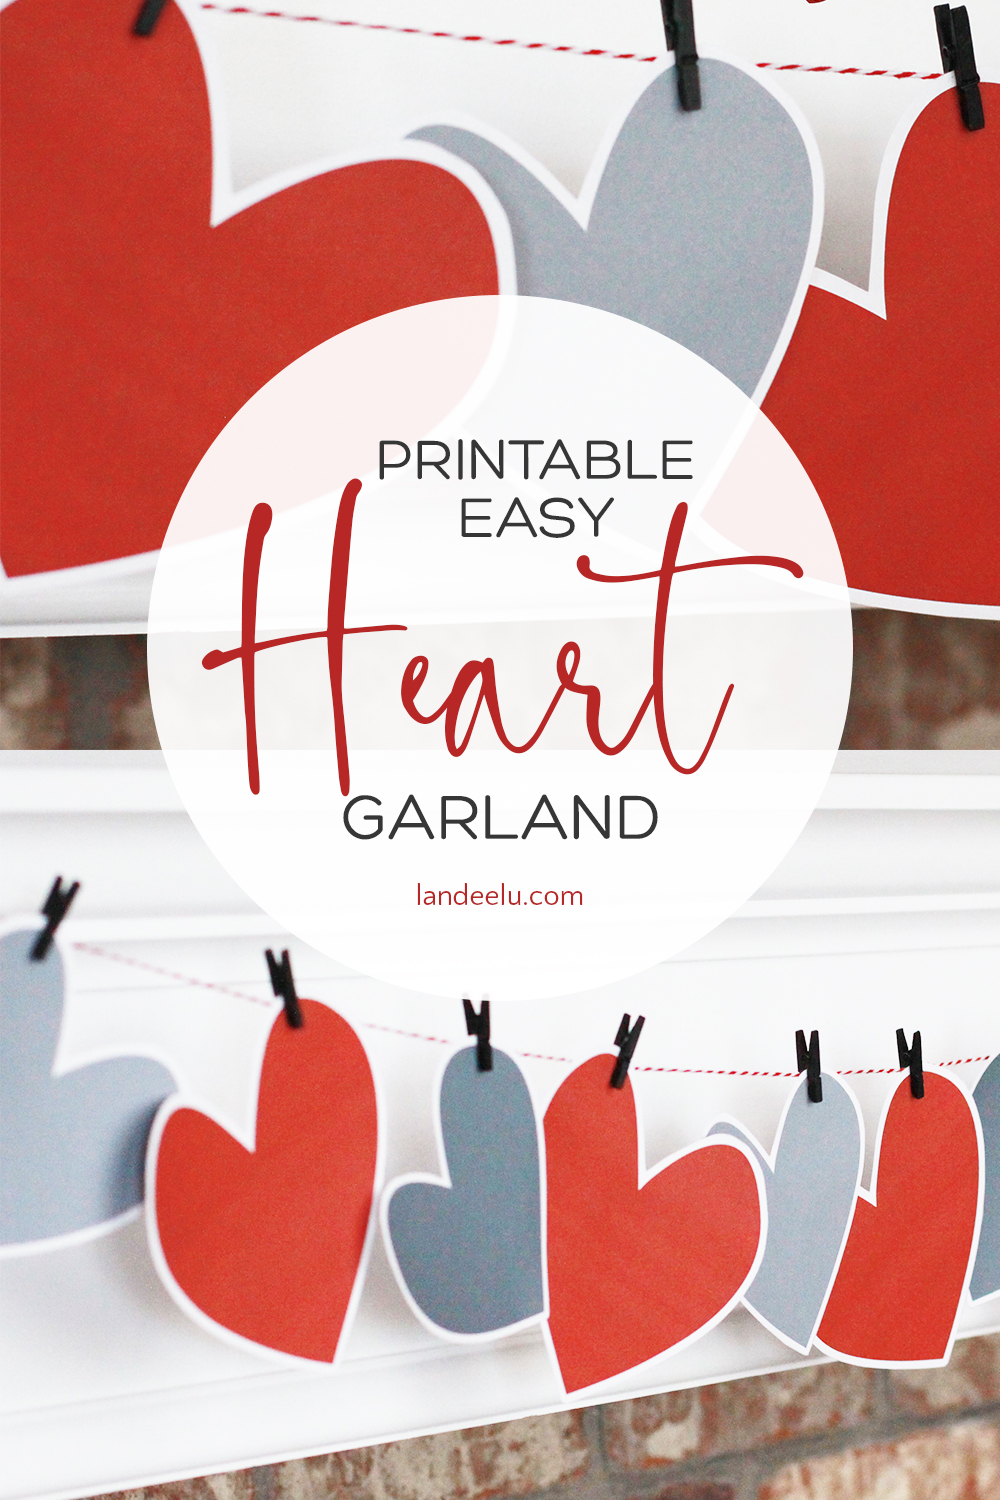 Darling and super easy printable Valentine heart garland!  Just download, print and cut out!  Love this idea.  #valentinesday #valentine #valentinegarland #heartgarland #valentineprintable